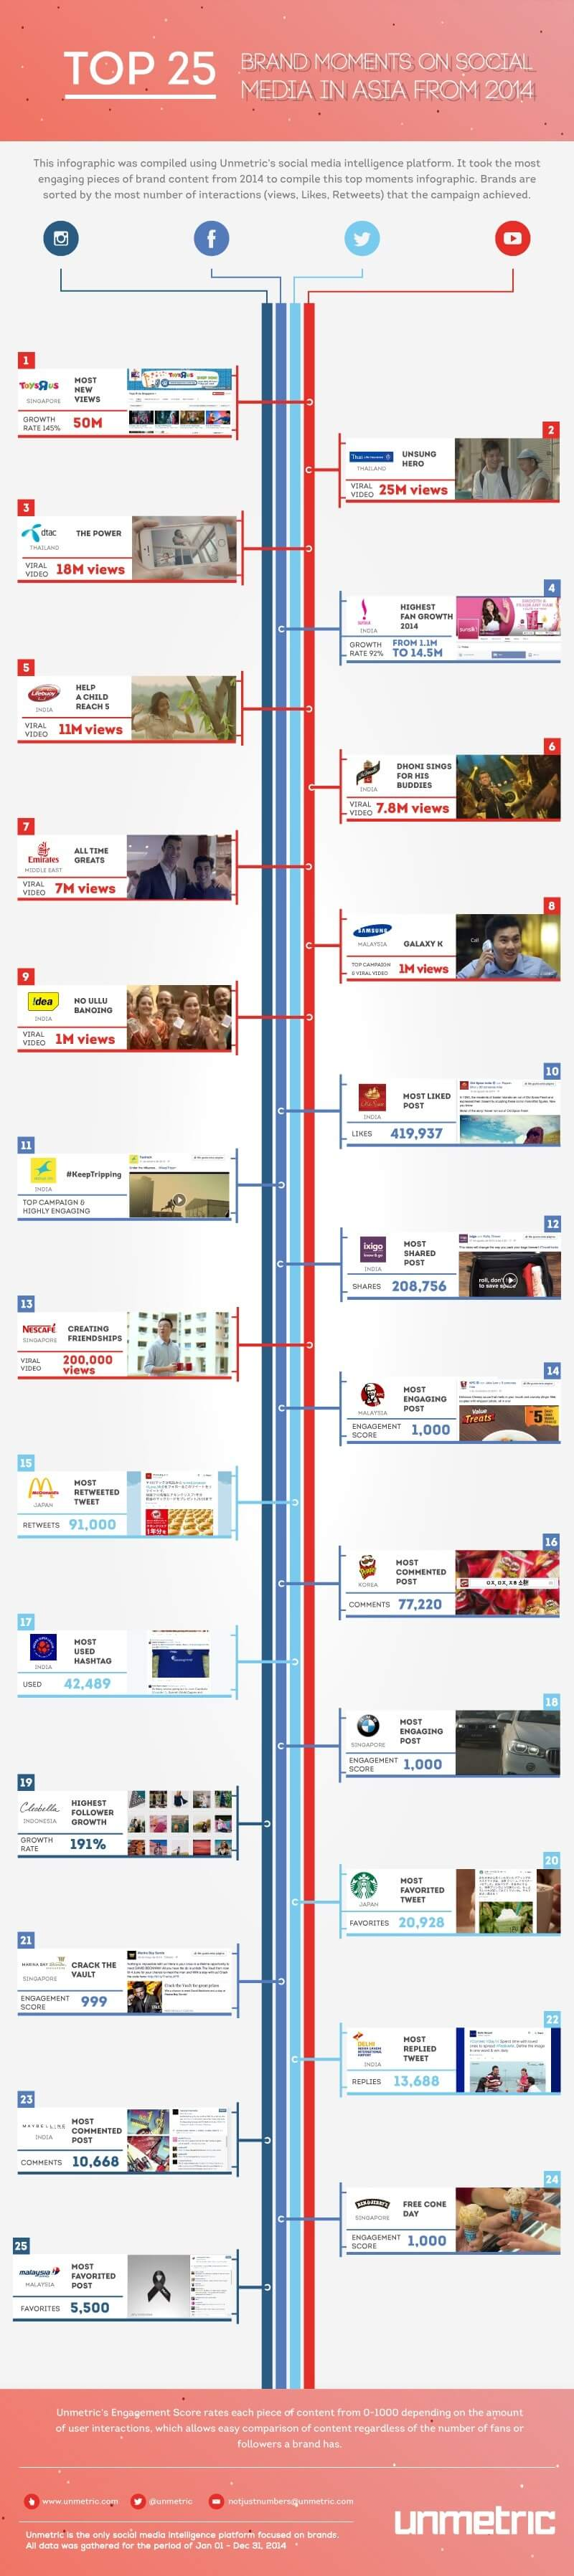 Unmetric_TOP25_APAC_Campaigns_of_2014